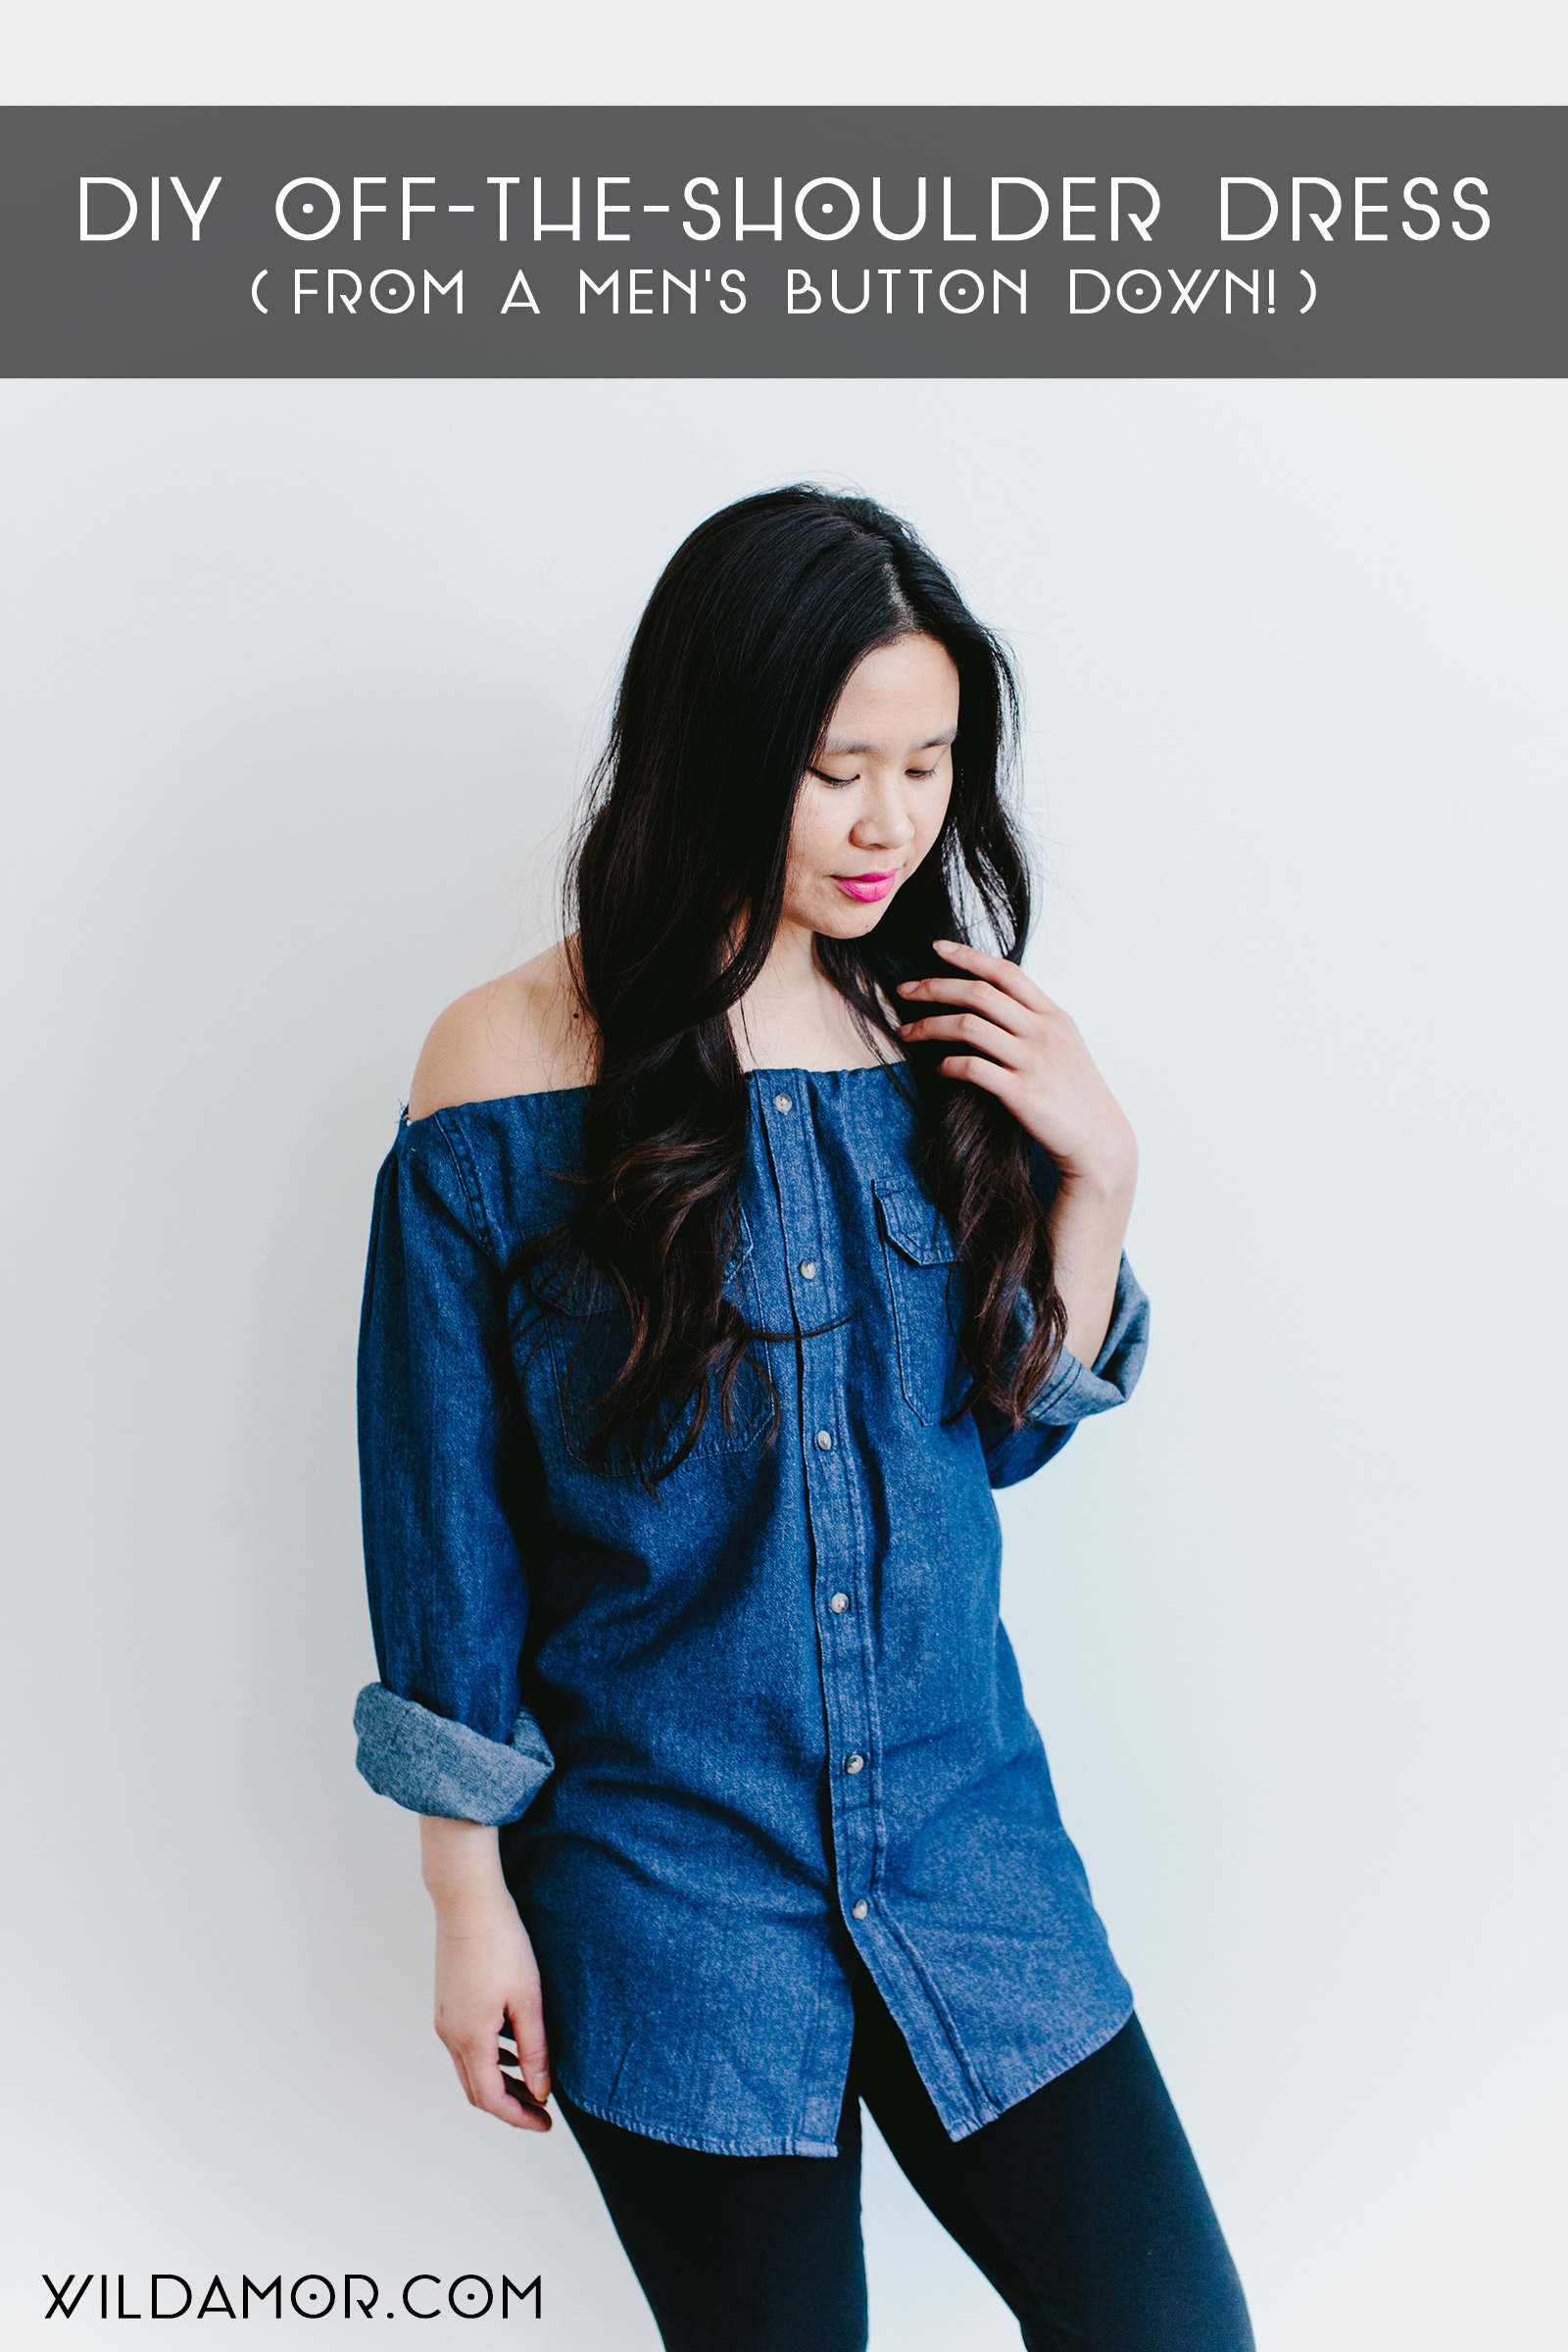 How to Turn a Button-Down Shirt Into a DIY Off-the-Shoulder Top or Dress